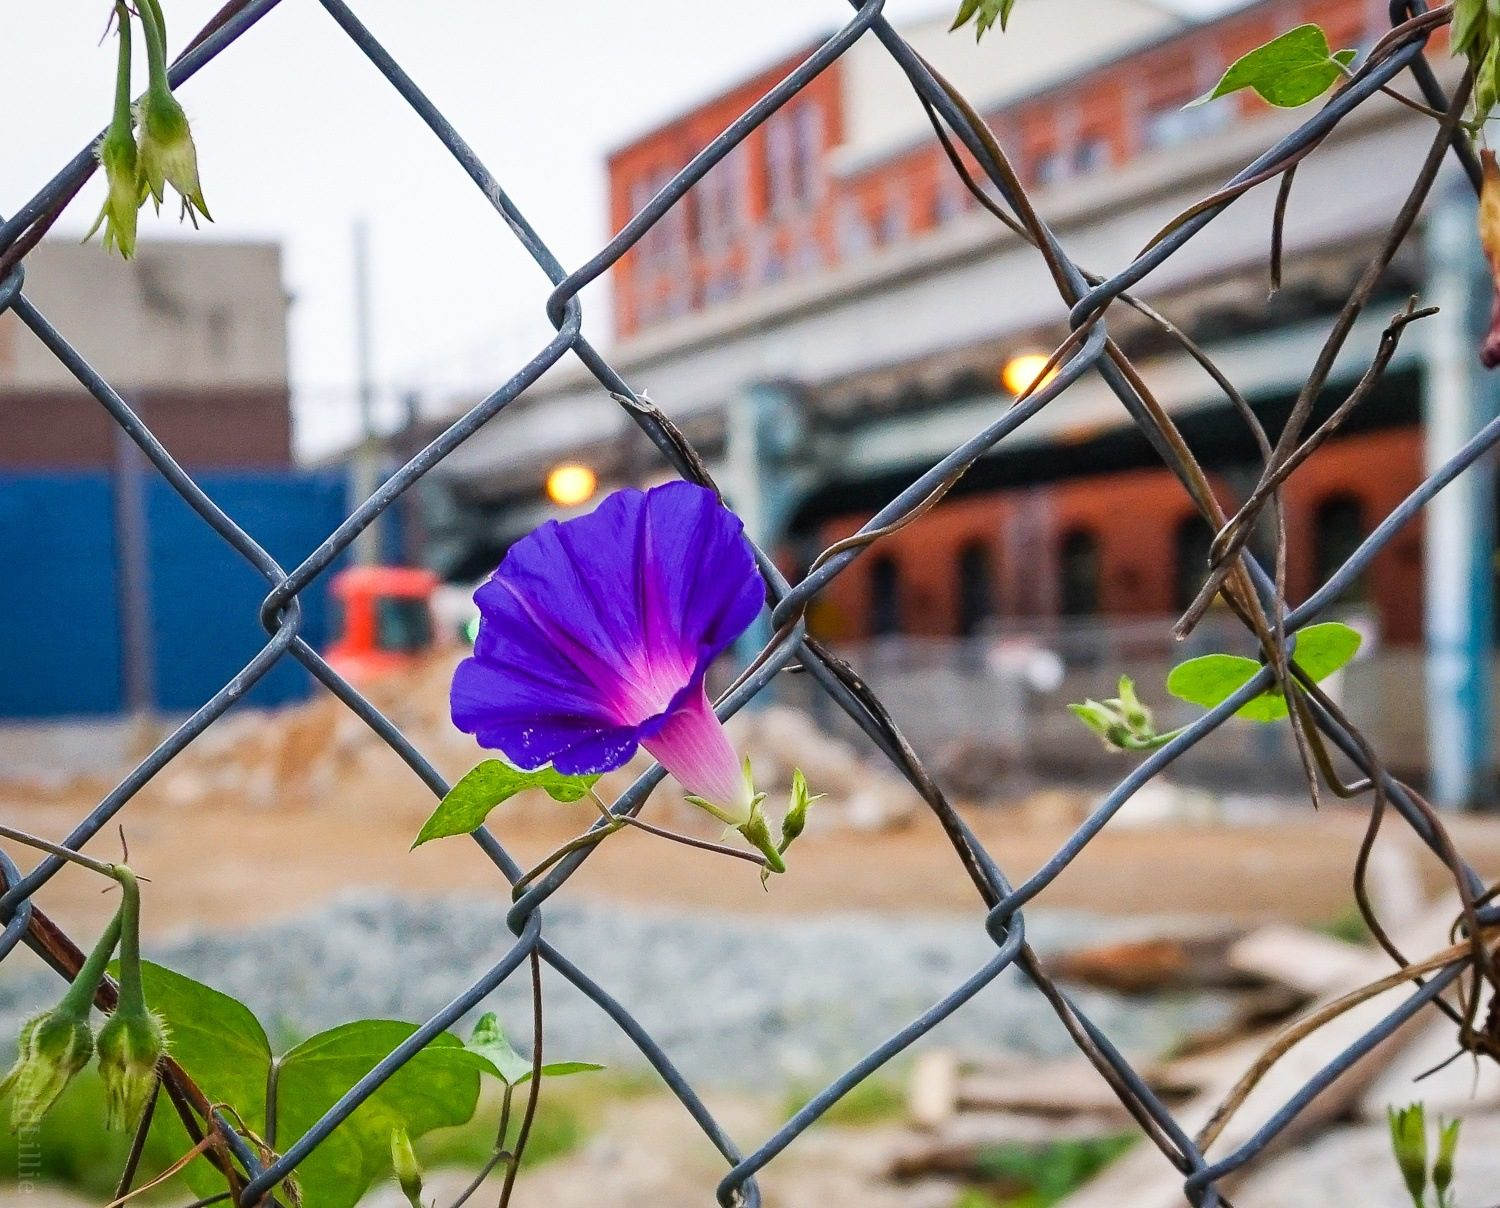 Morning Glory flowers popped up all over town.